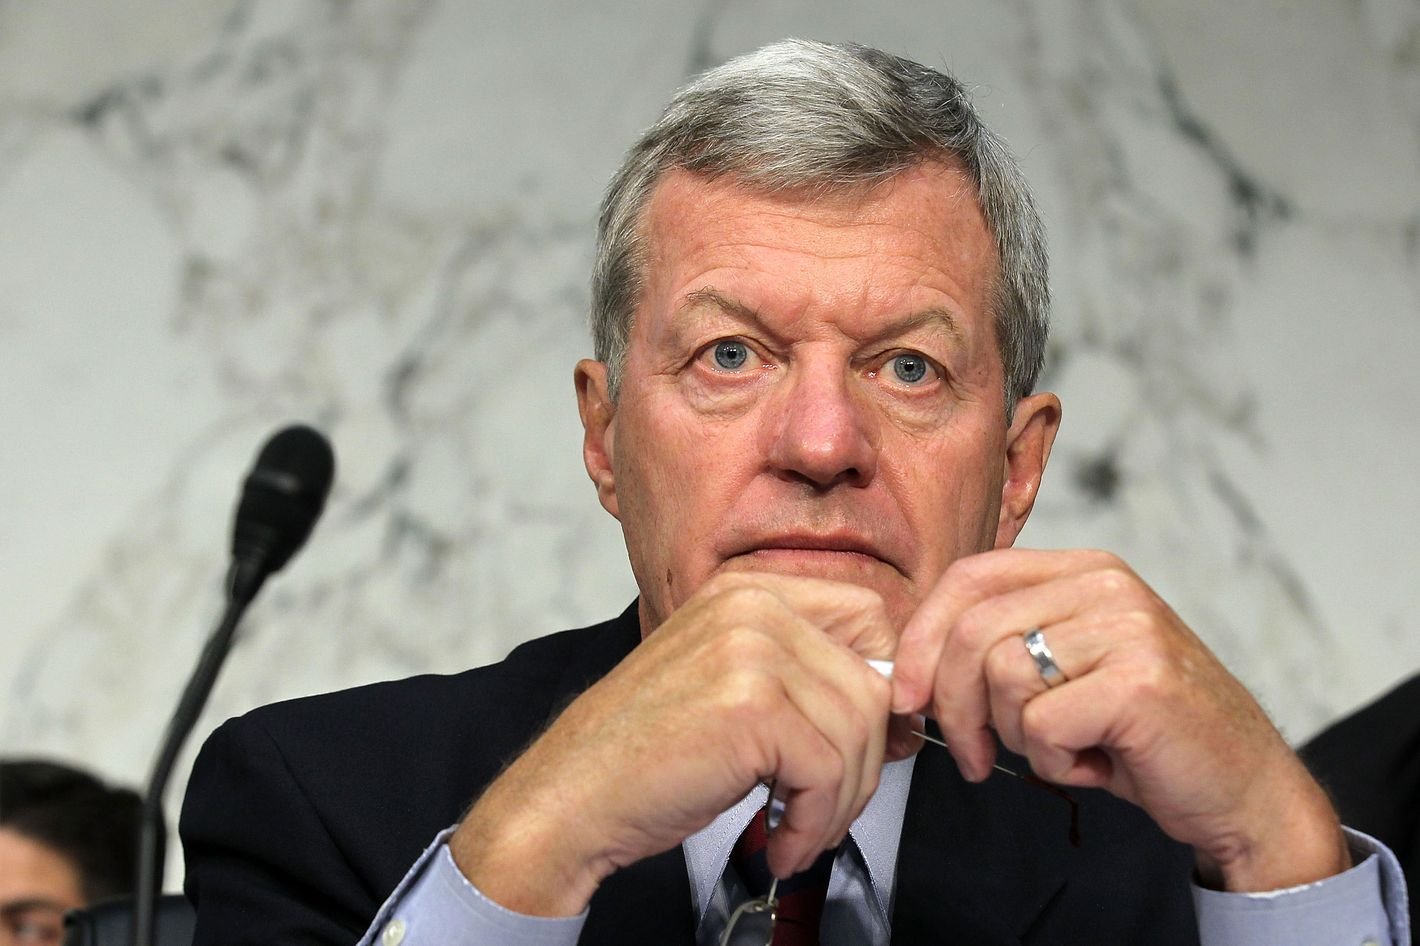 """U.S. Sen. Max Baucus (D-MT) listens during a hearing before the Joint Deficit Reduction Committee, also known as the supercommittee, September 13, 2011 on Capitol Hill in Washington, DC.  The committee heard from Congressional Budget Office Director Douglas Elmendorf on """"The History and Drivers of Our Nation's Debt and Its Threats."""""""